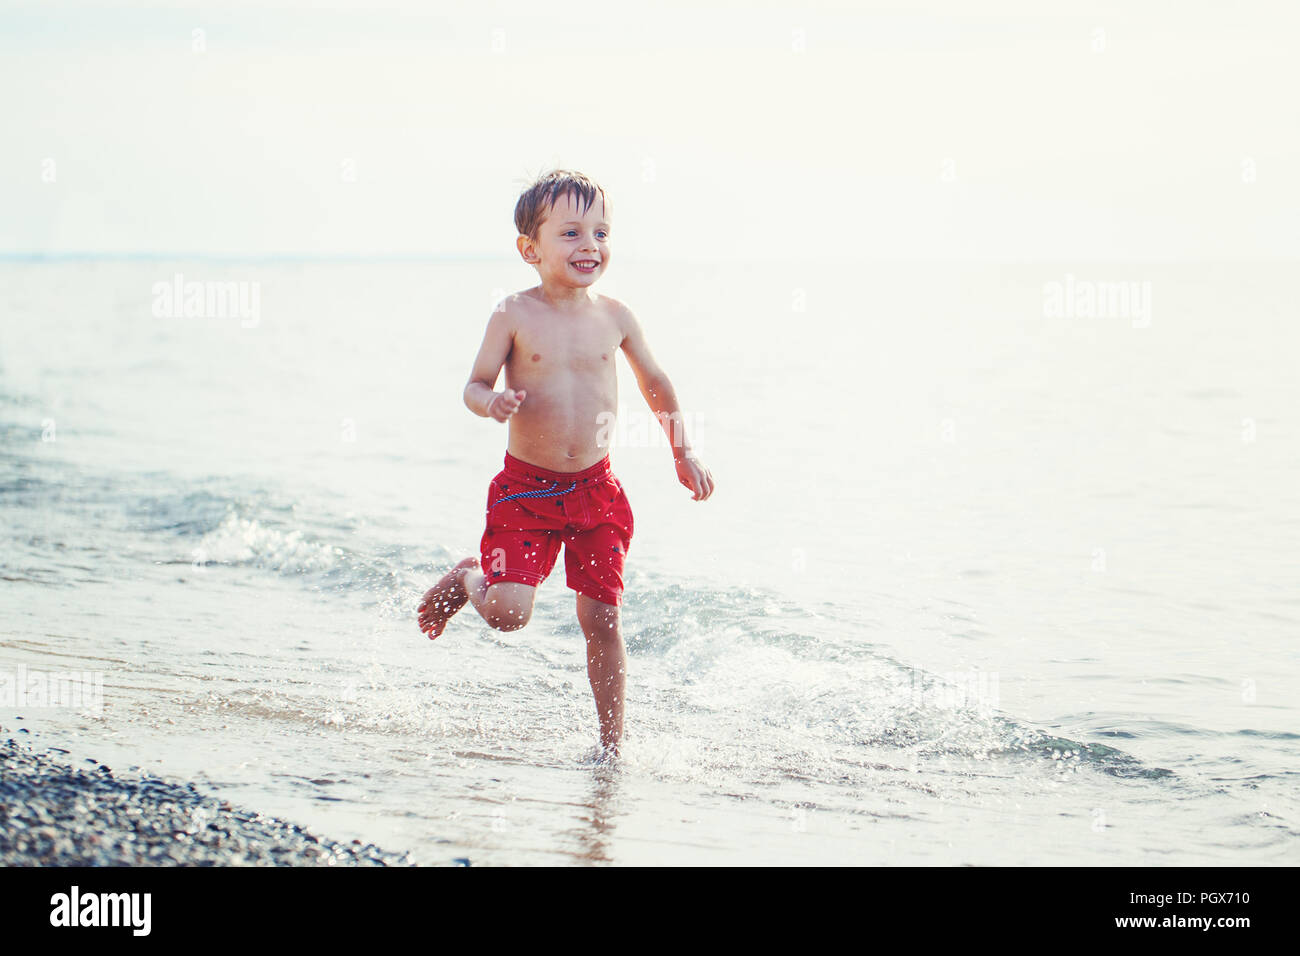 Portrait of funny adorable white Caucasian one young little boy in red swim shorts running on beach by water ocean sea, emotional healthy active lifes - Stock Image